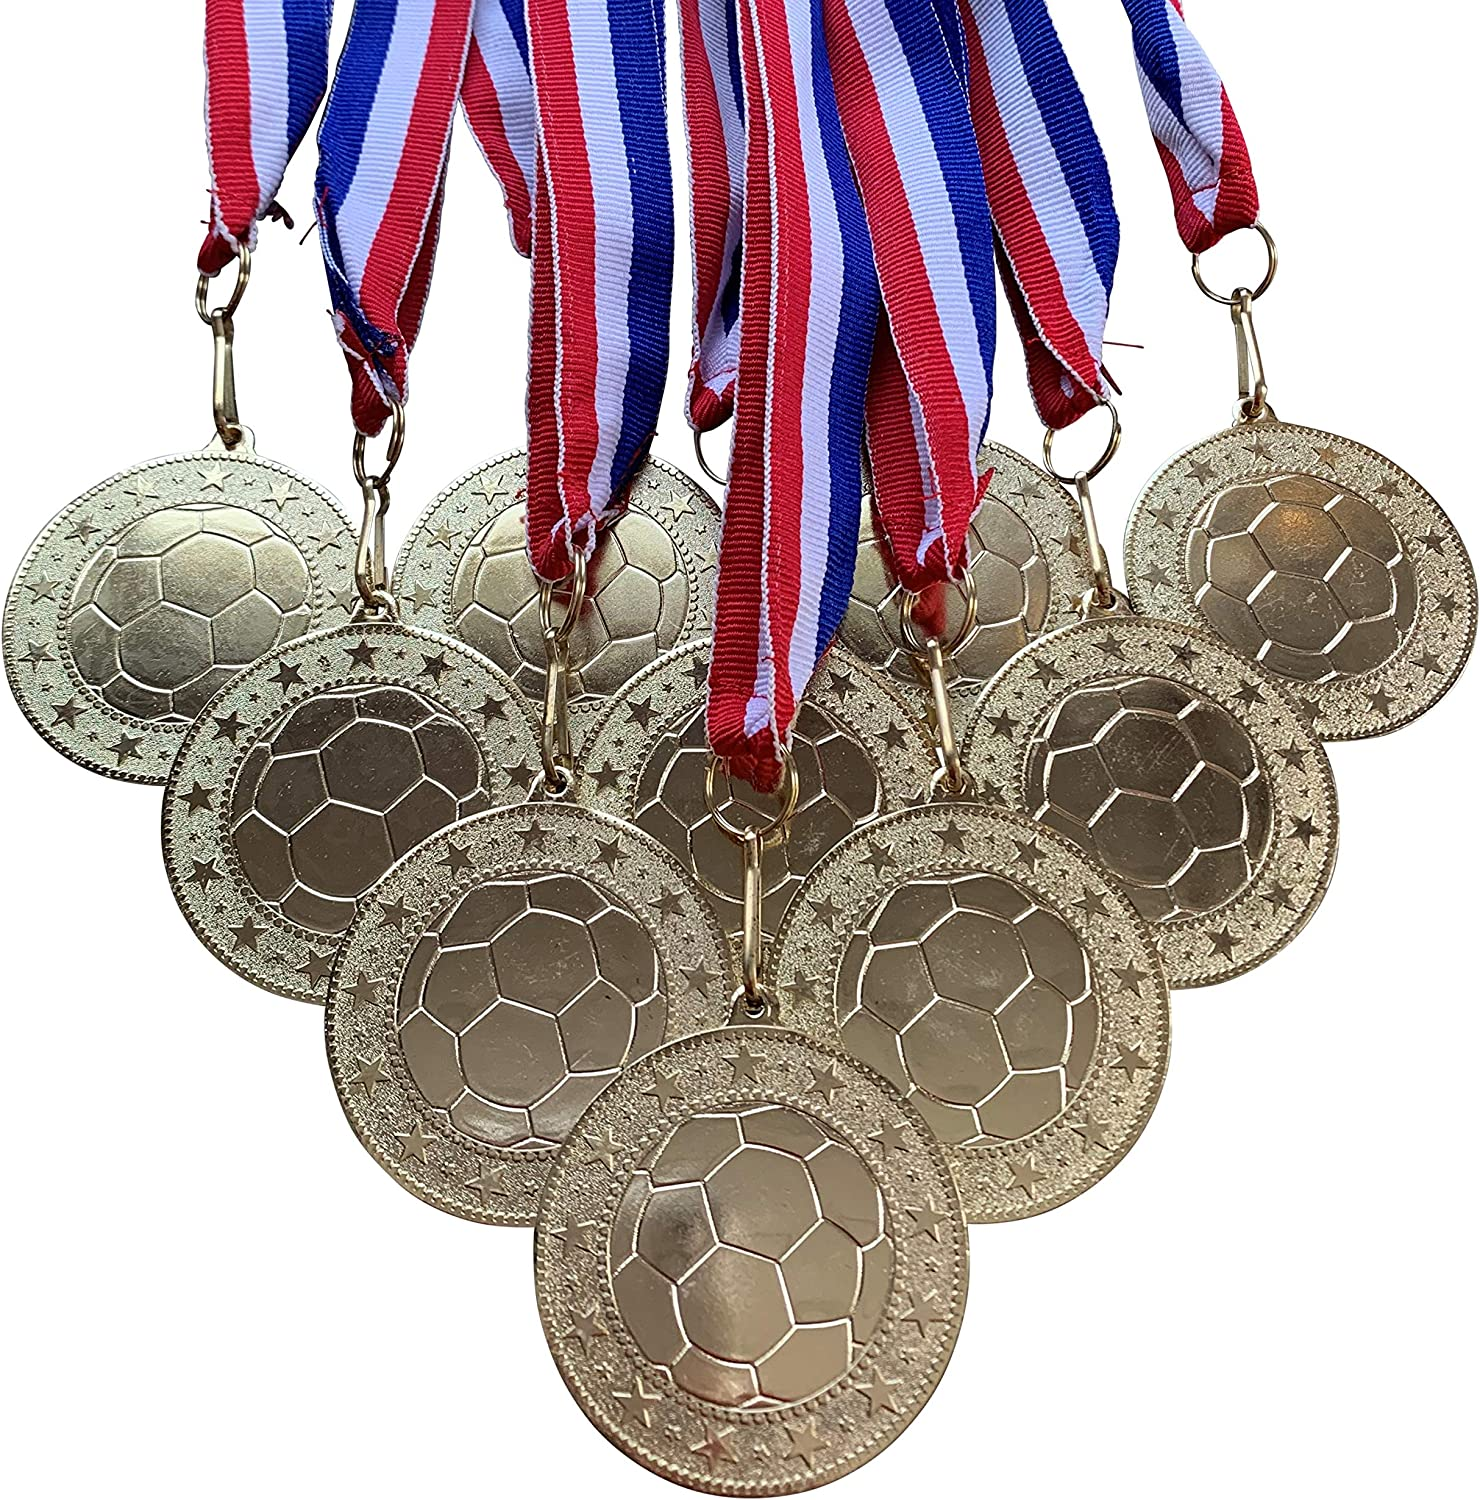 10 Pack of Silver Soccer Medals Trophy Award with Neck Ribbons